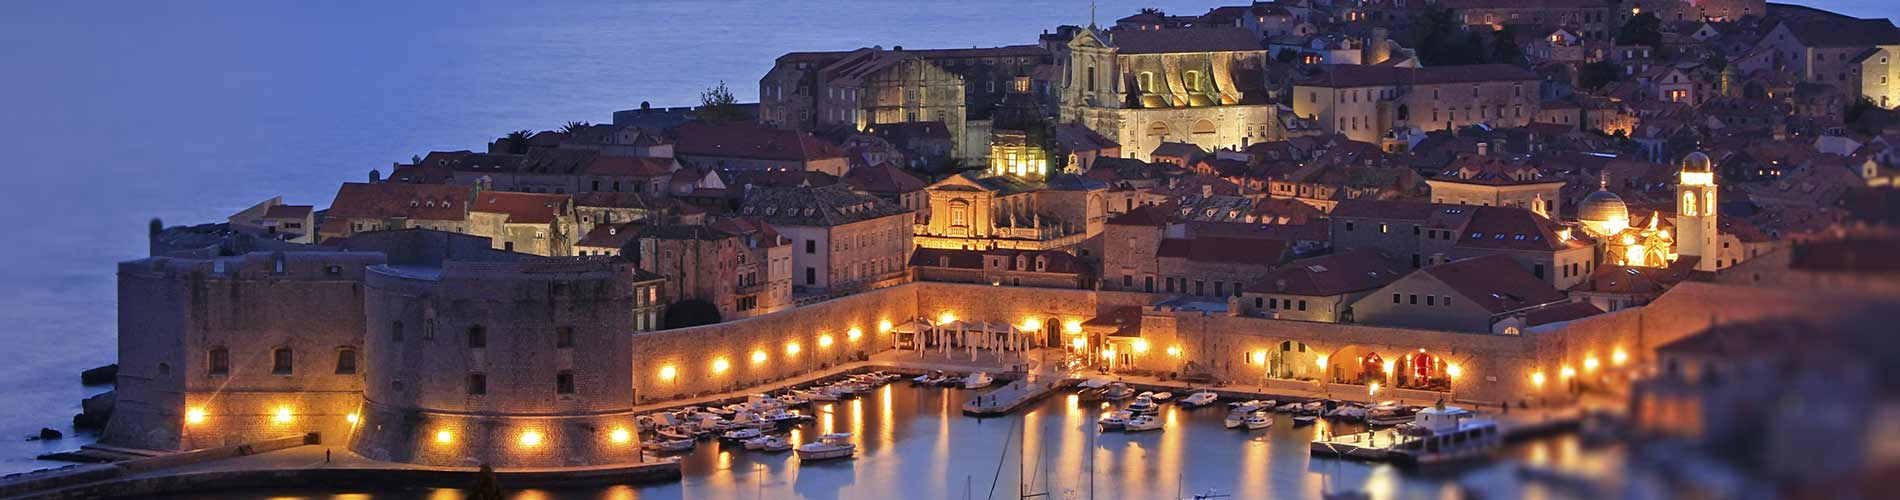 Dubrovnik Old Town at Night.jpg